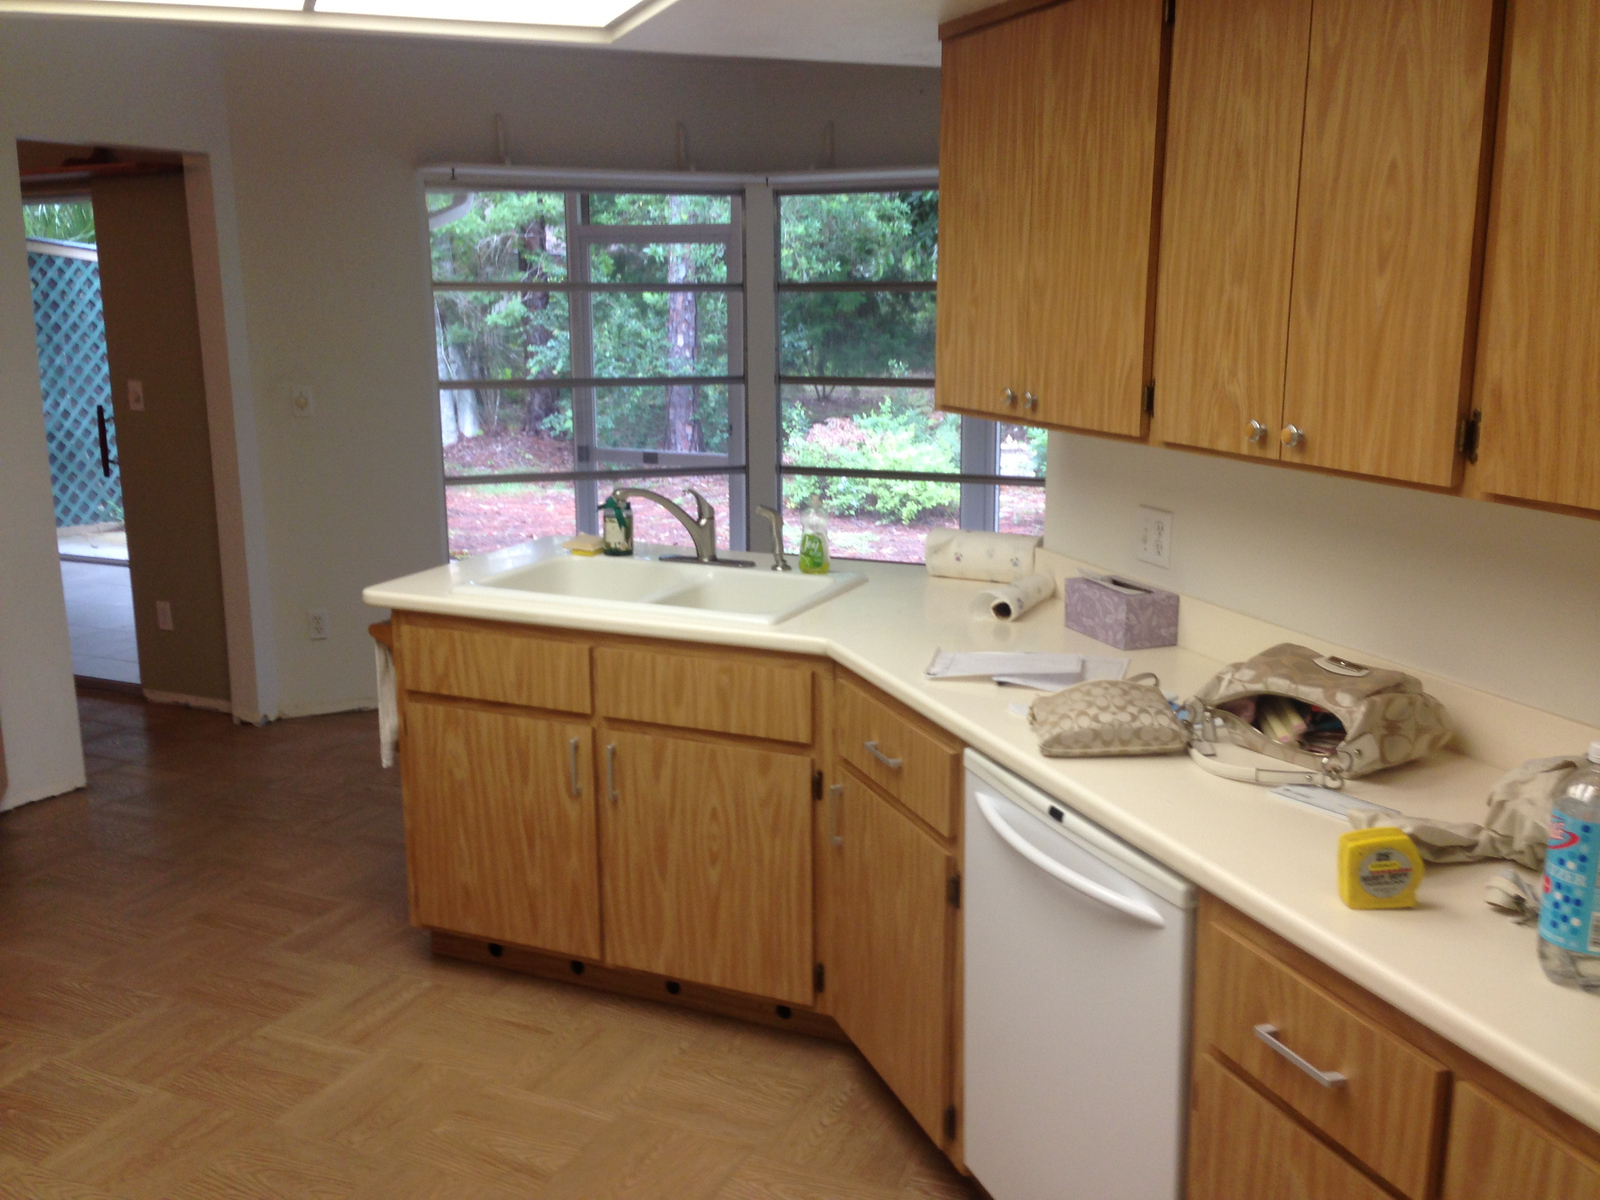 View of the kitchen before the renovation